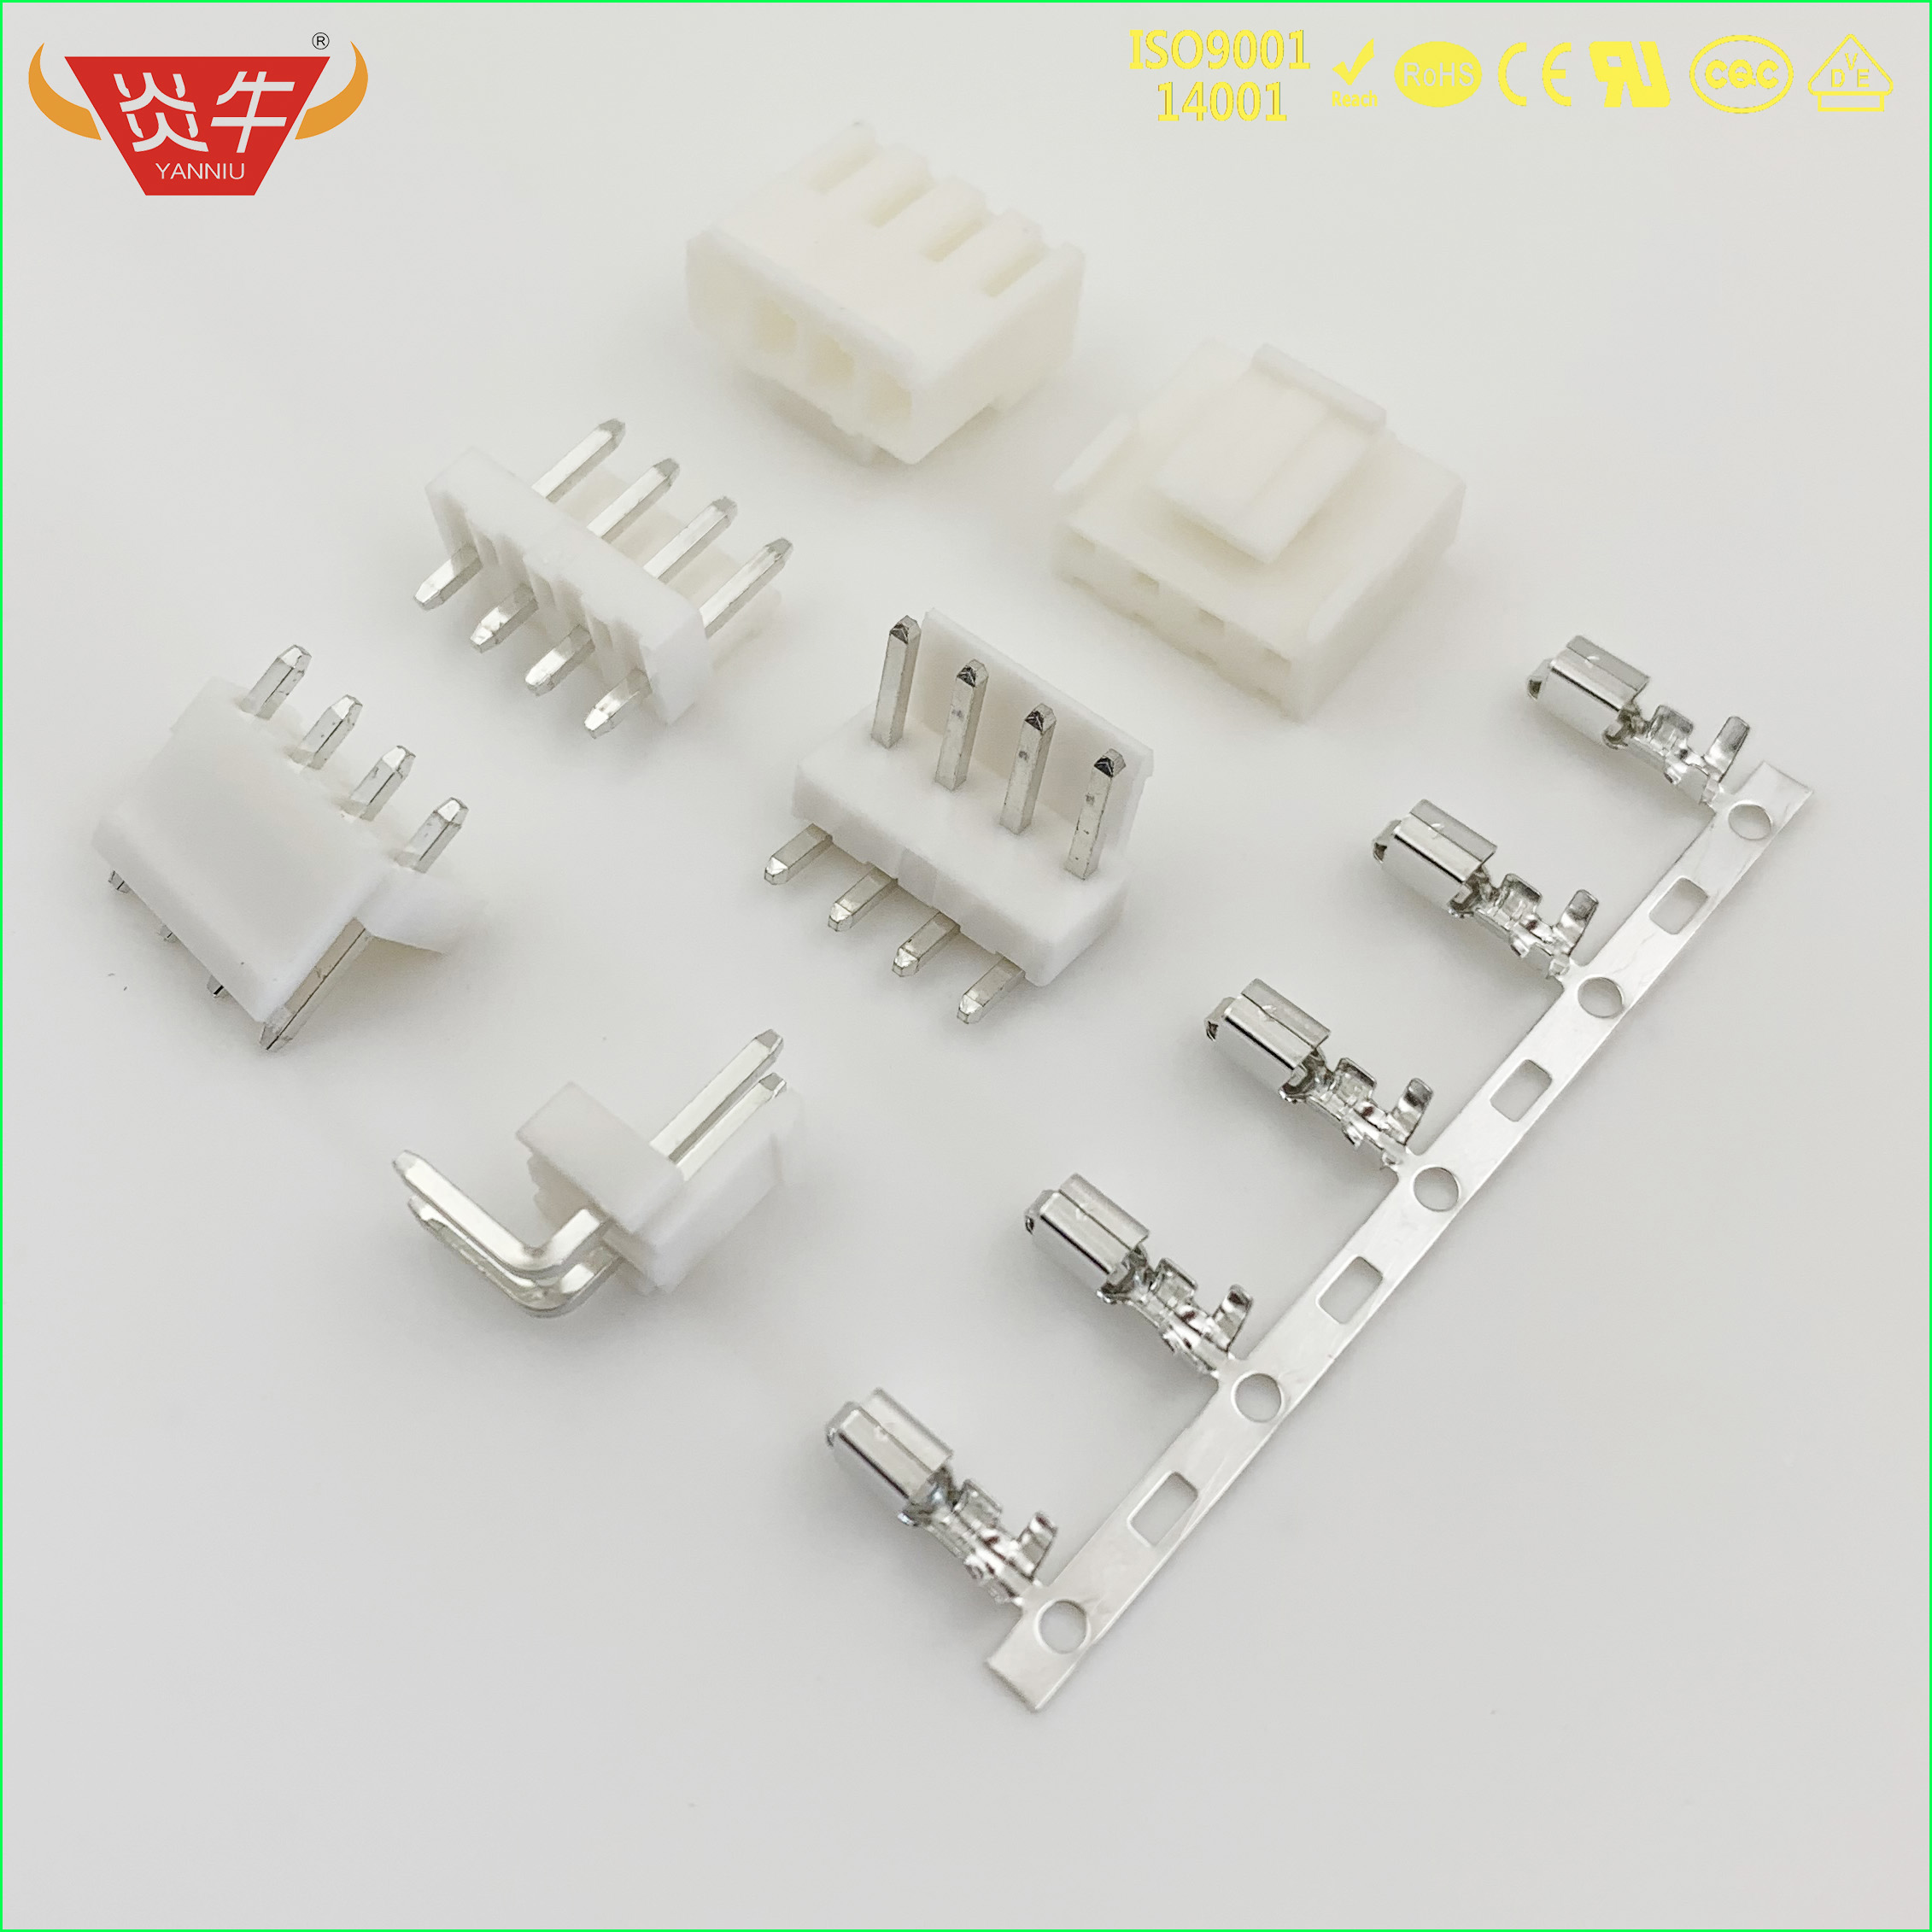 VH 3.96 WHITE STRIP CONNECTOR 3.96mm HOUSING WAFER TERMINAL HX39600-PT HX39600-Y HX39601-A HX39601-WAP HX39601-WAG HXH MOLEX JST